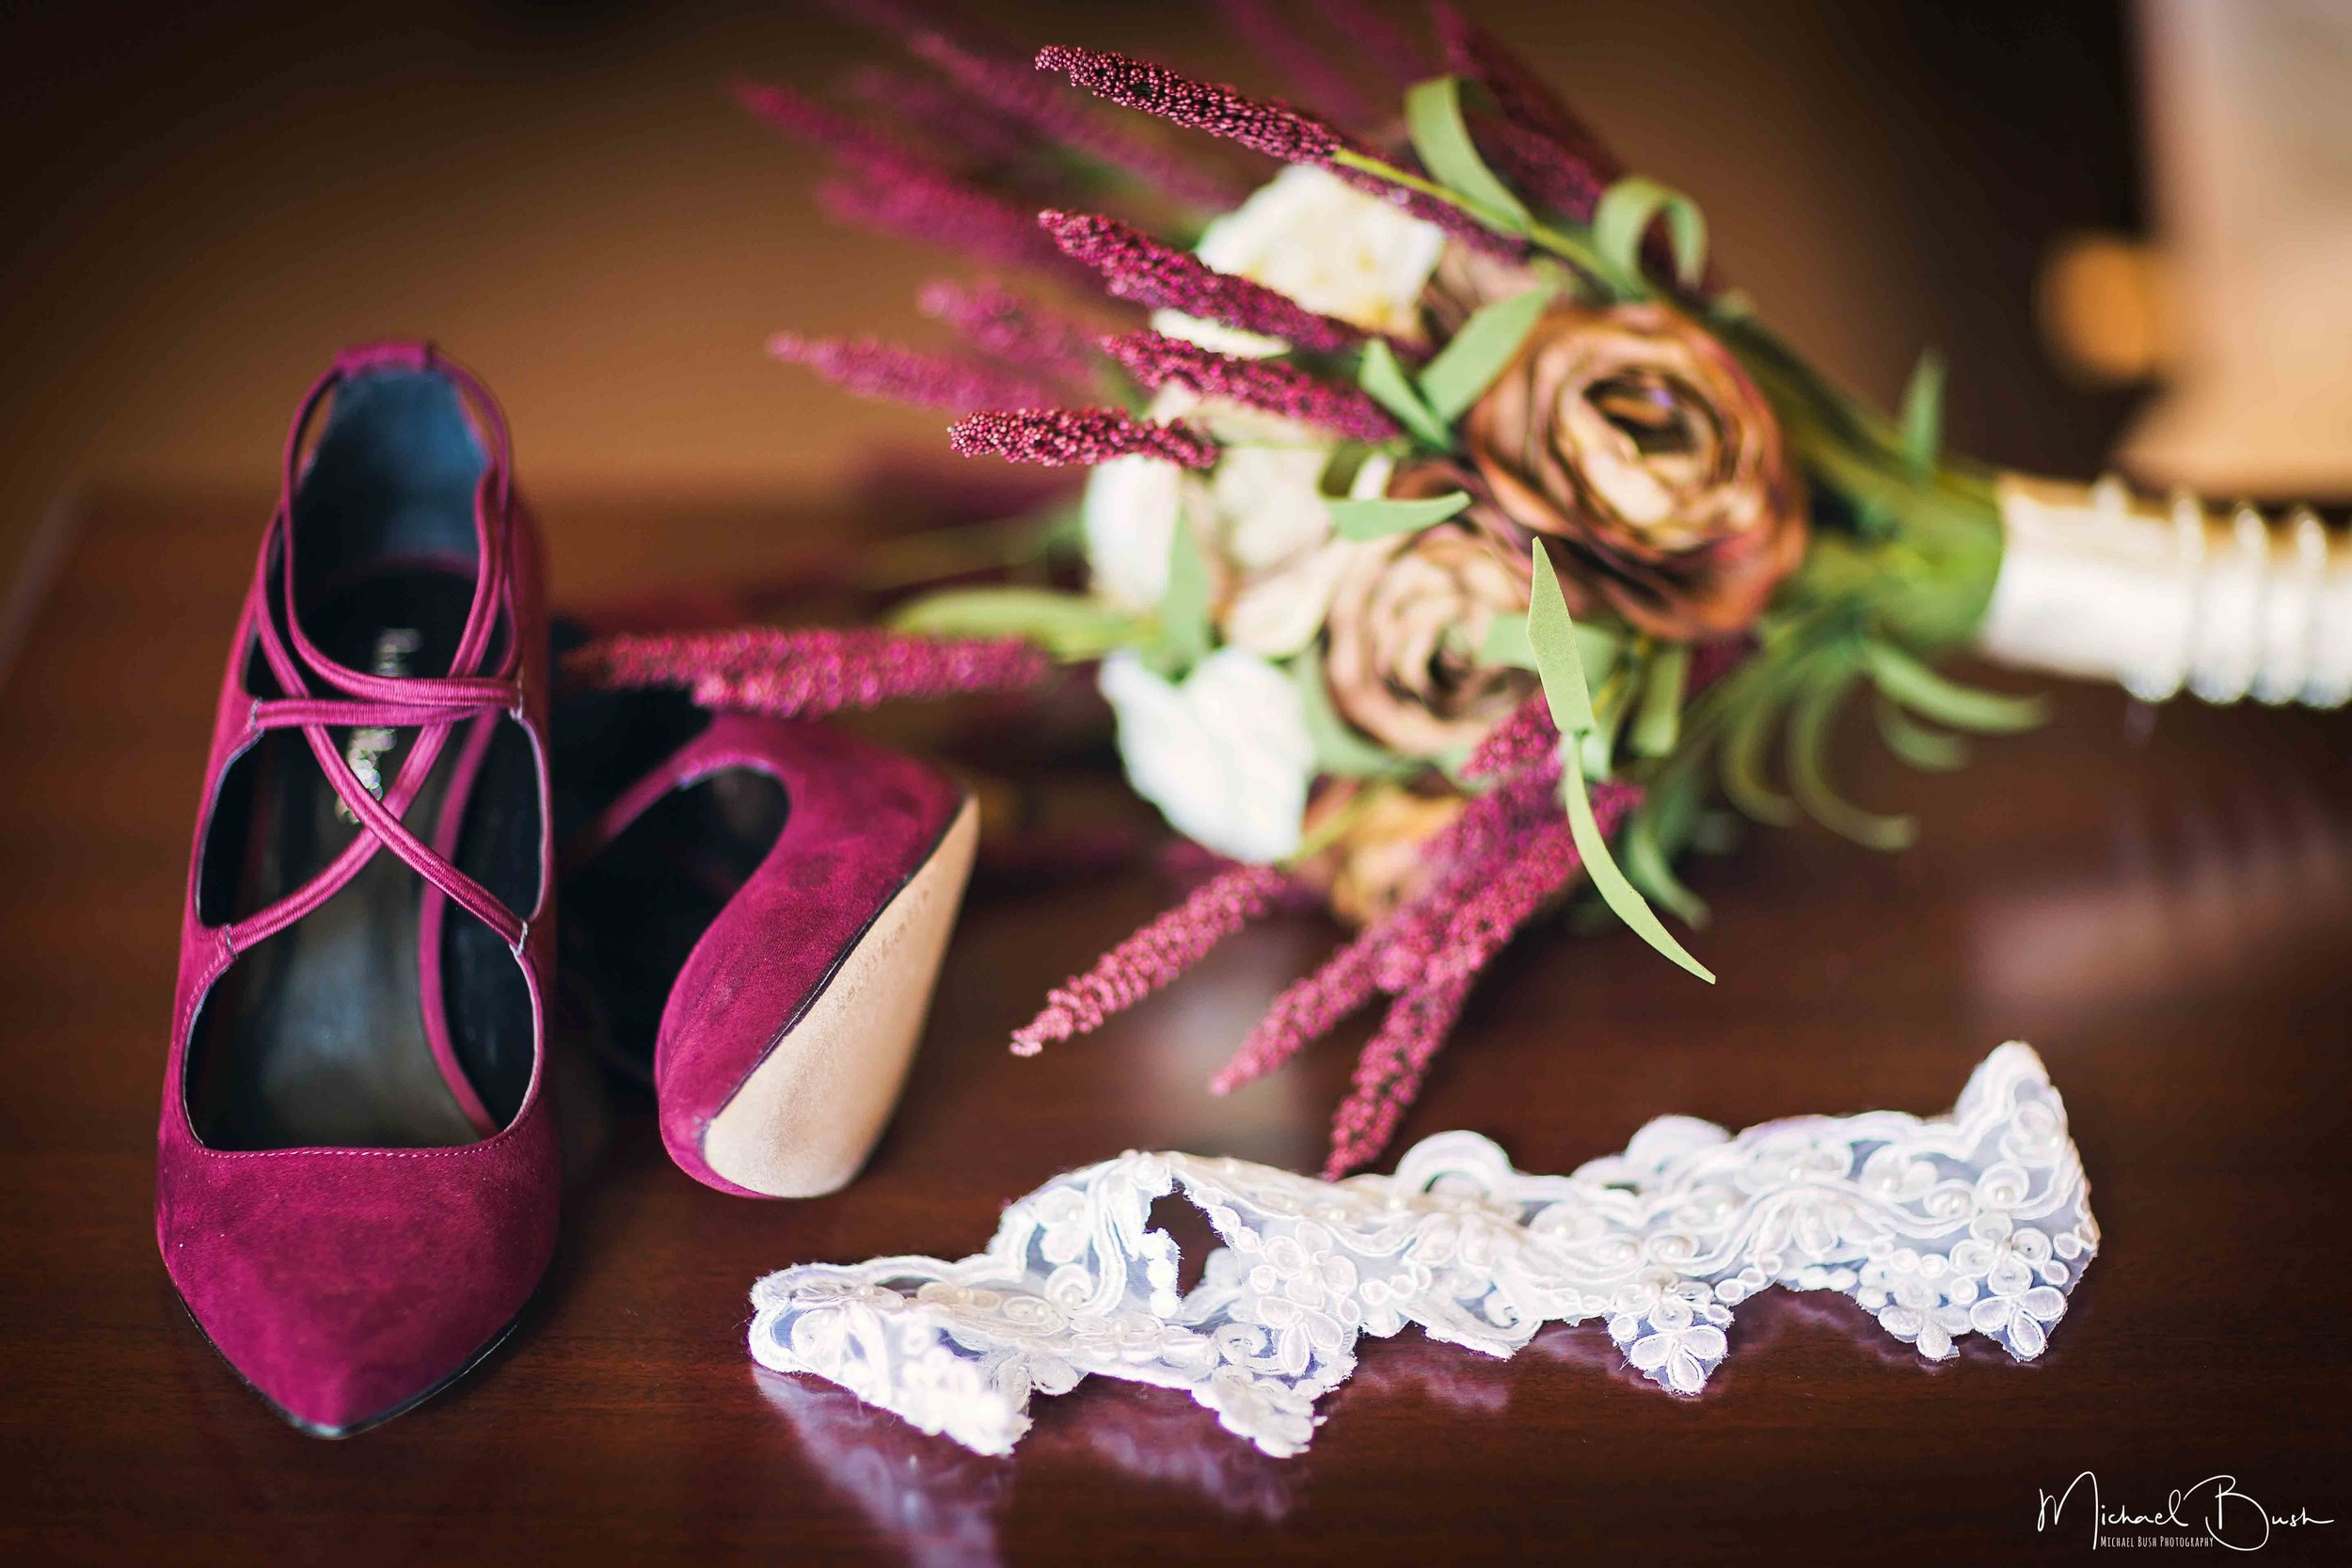 Wedding-Details-Bride-Fort Worth-colors-Getting Ready-MUA-brides-dress-shoes-crown-wedding bouquet-bouquet.jpg